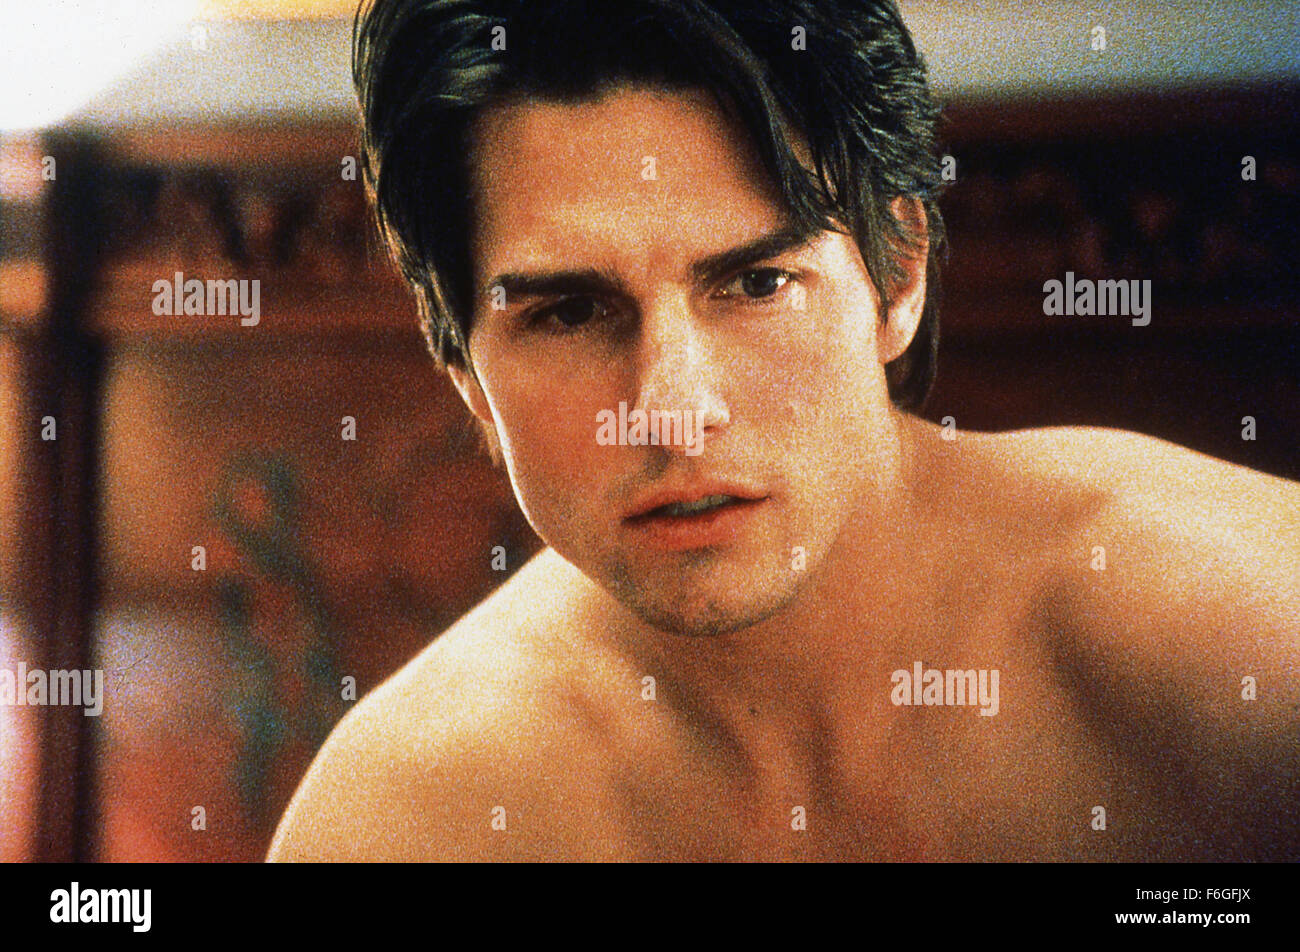 Jul 13, 1999; London, UK; Actor TOM CRUISE as Dr. Harford in 'Eyes Wide Shut'. Directed by Stanley Kubrick. - Stock Image